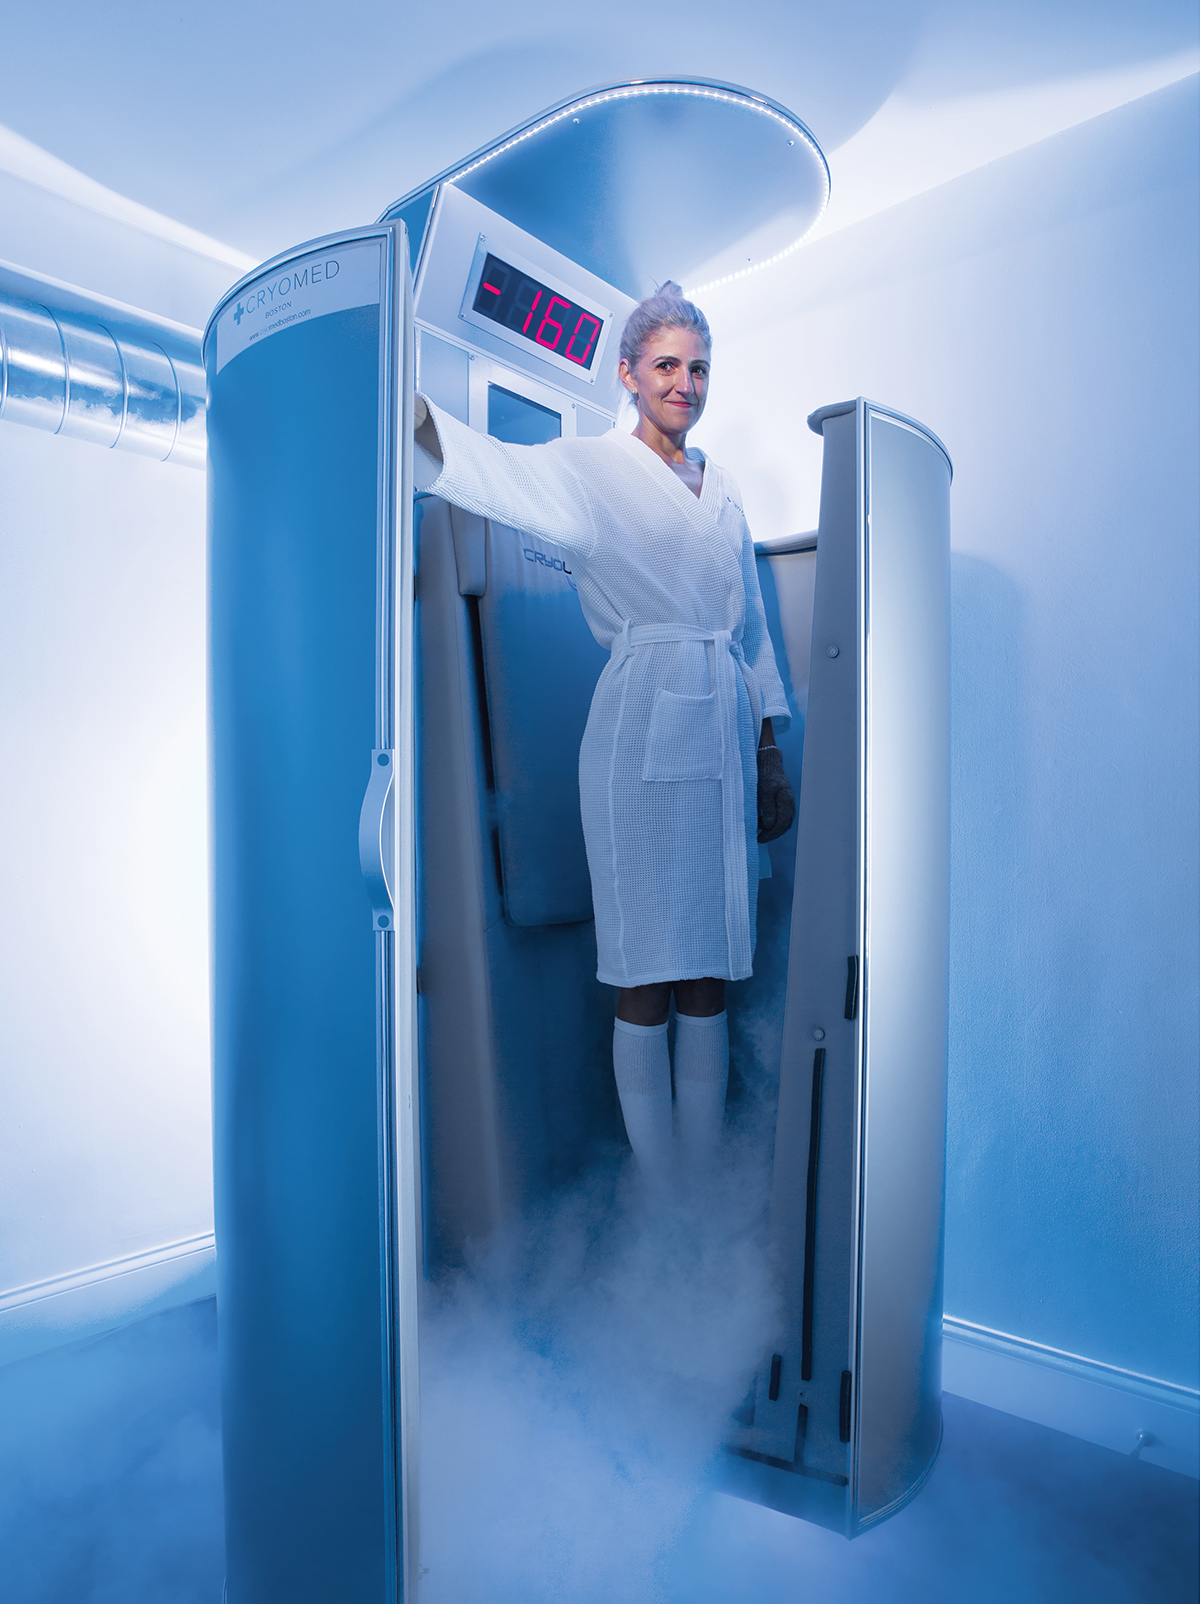 We Tried It: Cryotherapy at Cryomed Boston